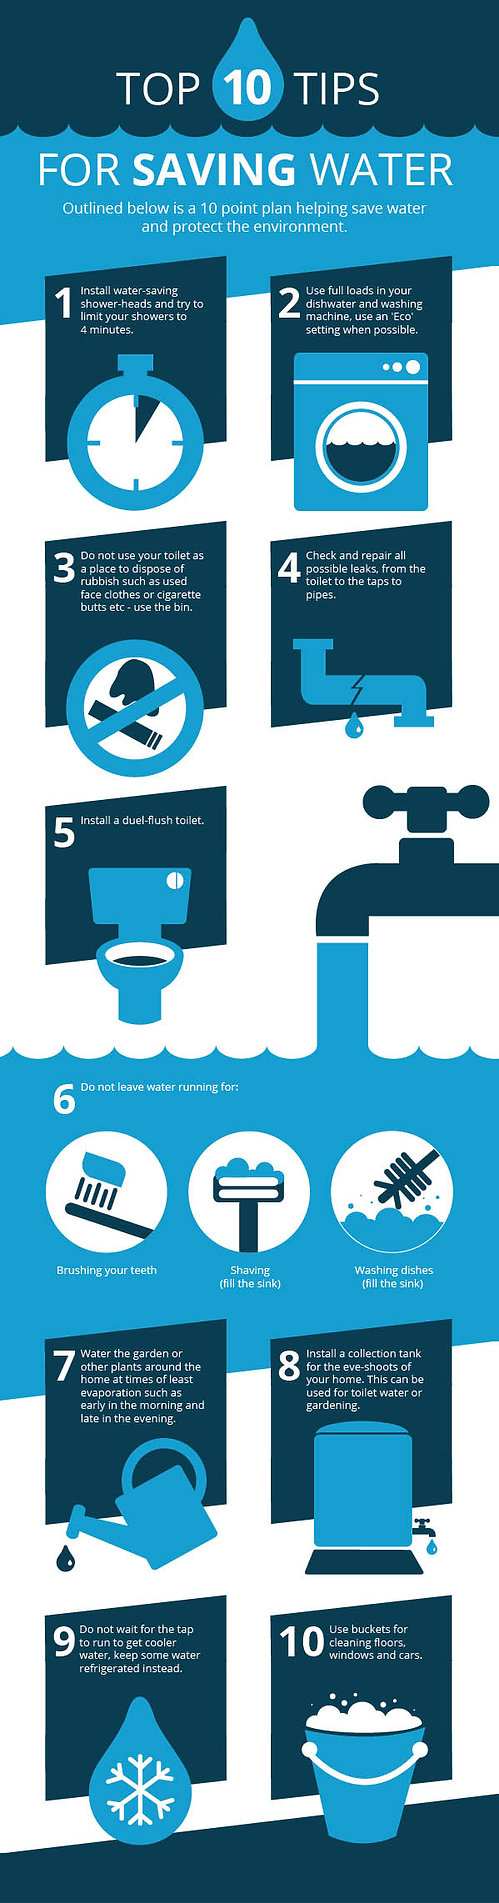 Super-Drain-Infographic_Top-10-Tips-for-